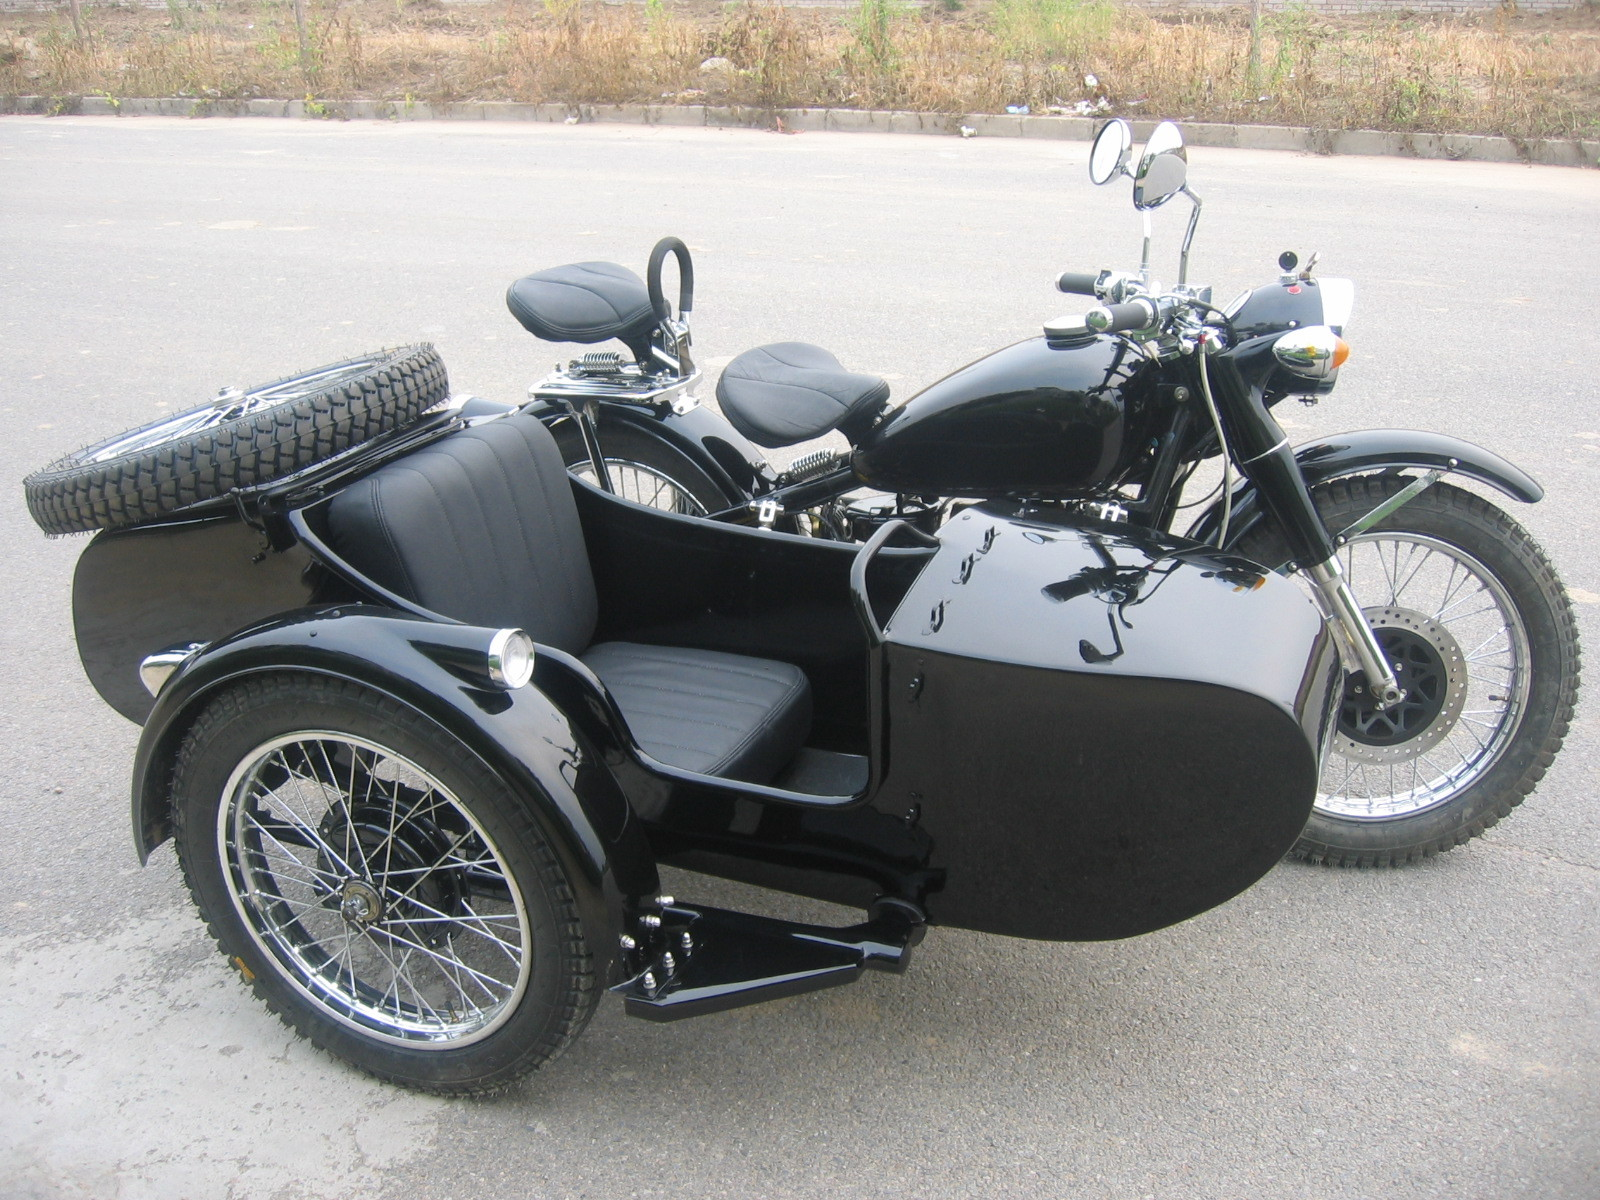 sidecar motorcycle side cars scooter bikes ural cj750 motorcycles motorbikes motor bmw moped russian harley scooters auto dampers steering visit